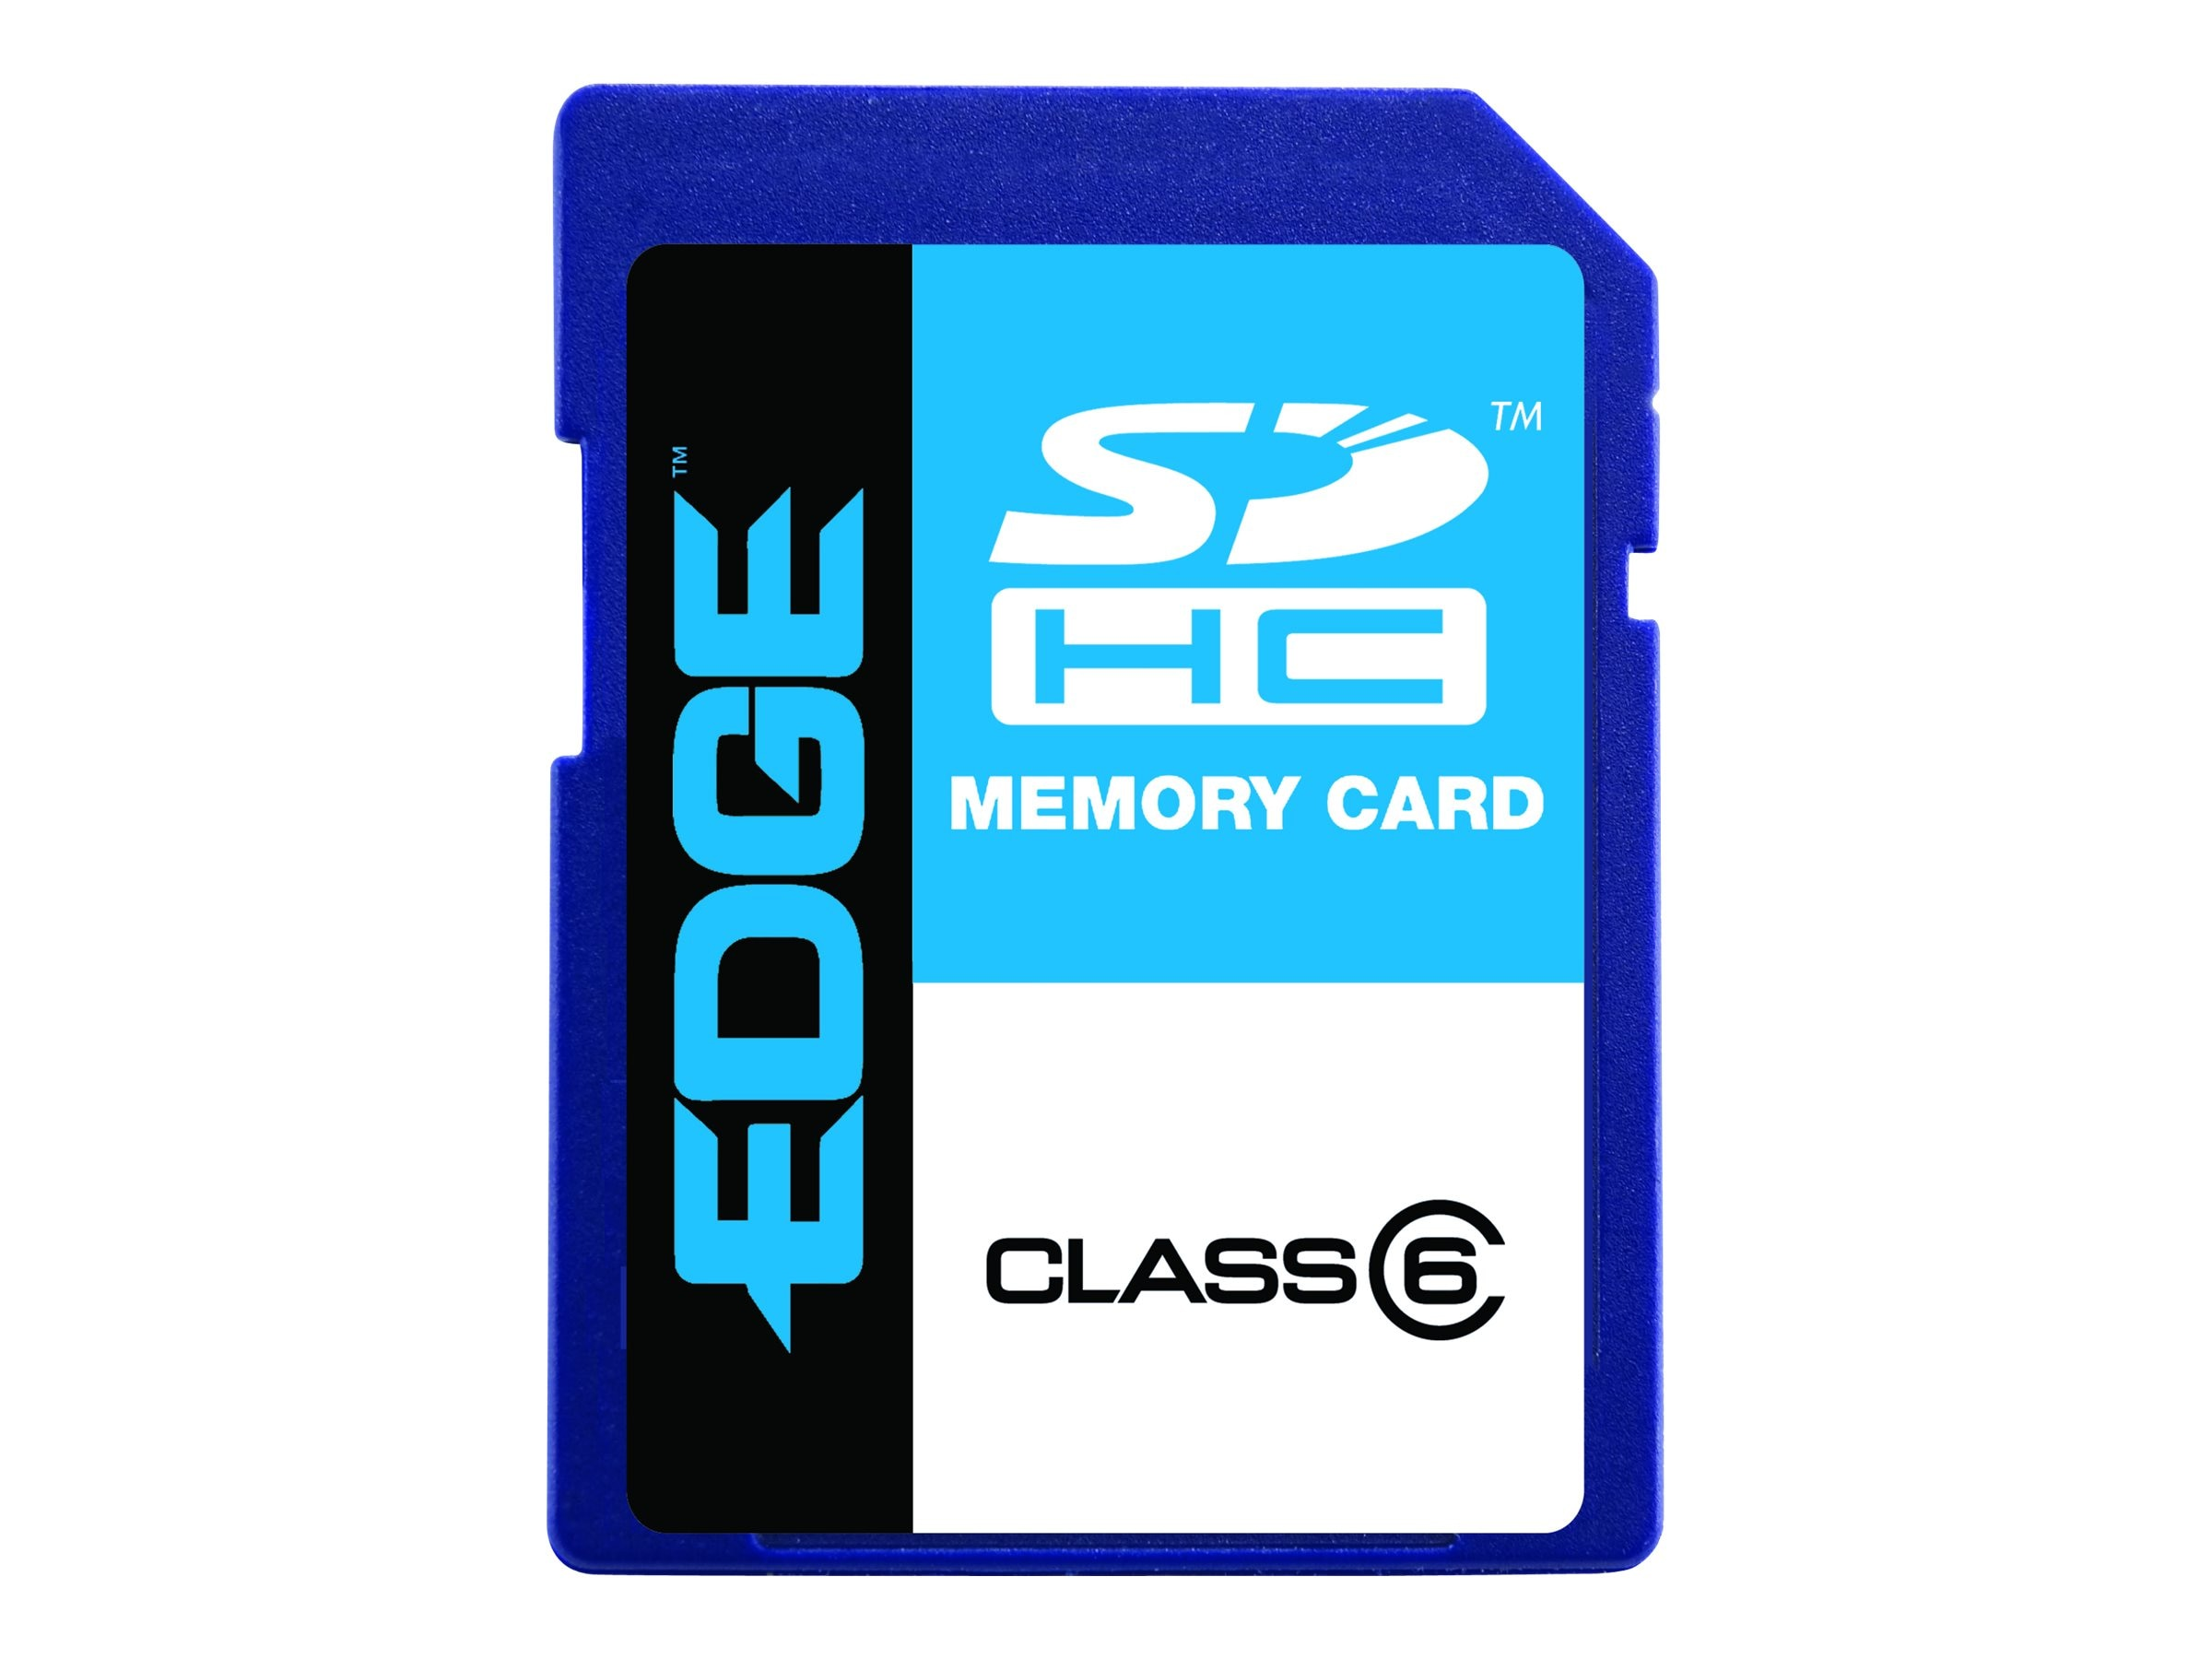 Edge 16GB SDHC Flash Memory Card, Class 6, PE216306, 8466041, Memory - Flash